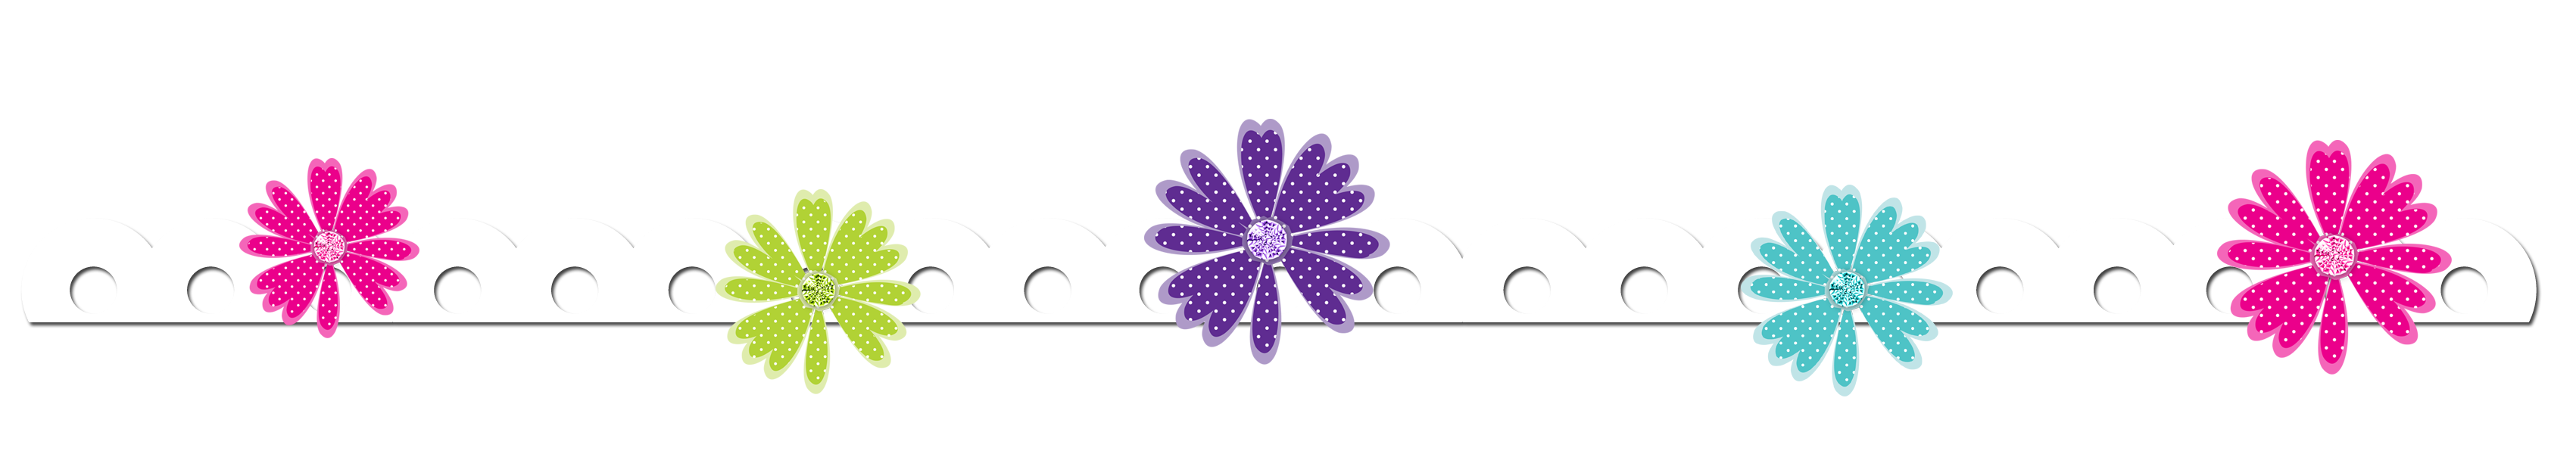 Flower Border Line Clipart | Free download on ClipArtMag